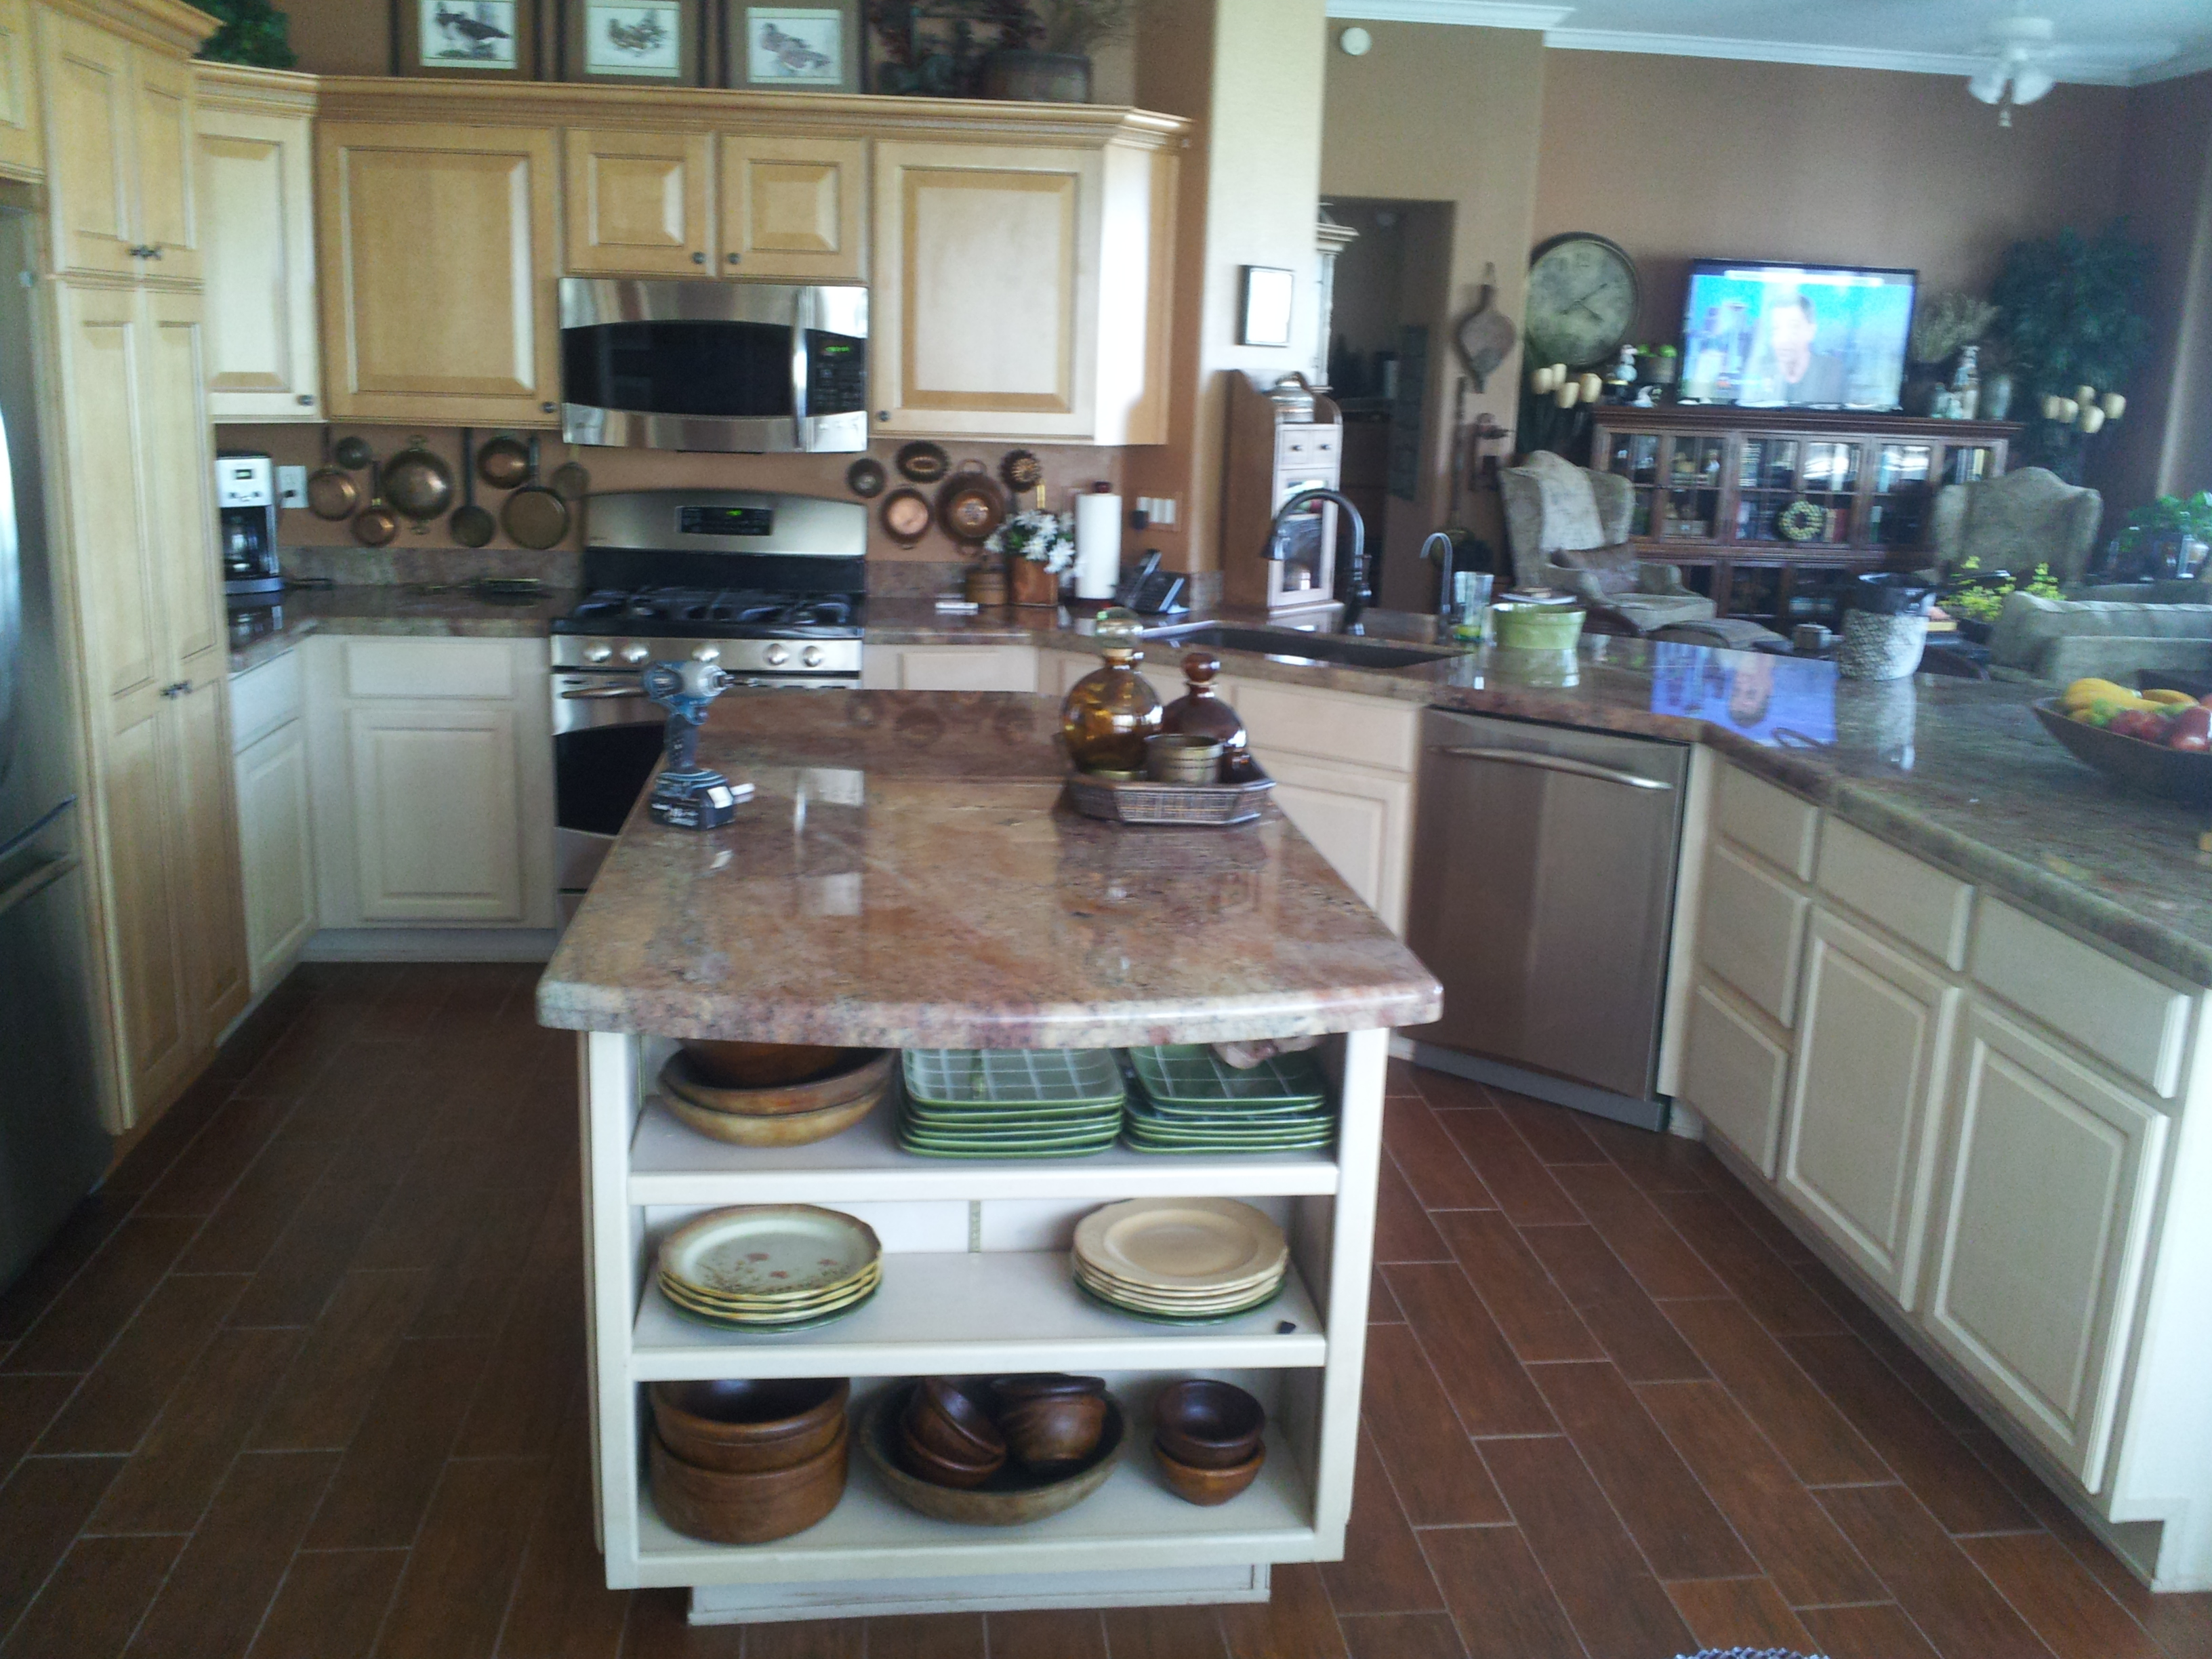 man countertops stainless cost nett slate counters magnificent lowes kitchen types quartz gorgeous solid corian engineered surface steel materials of soapstone countertop template made